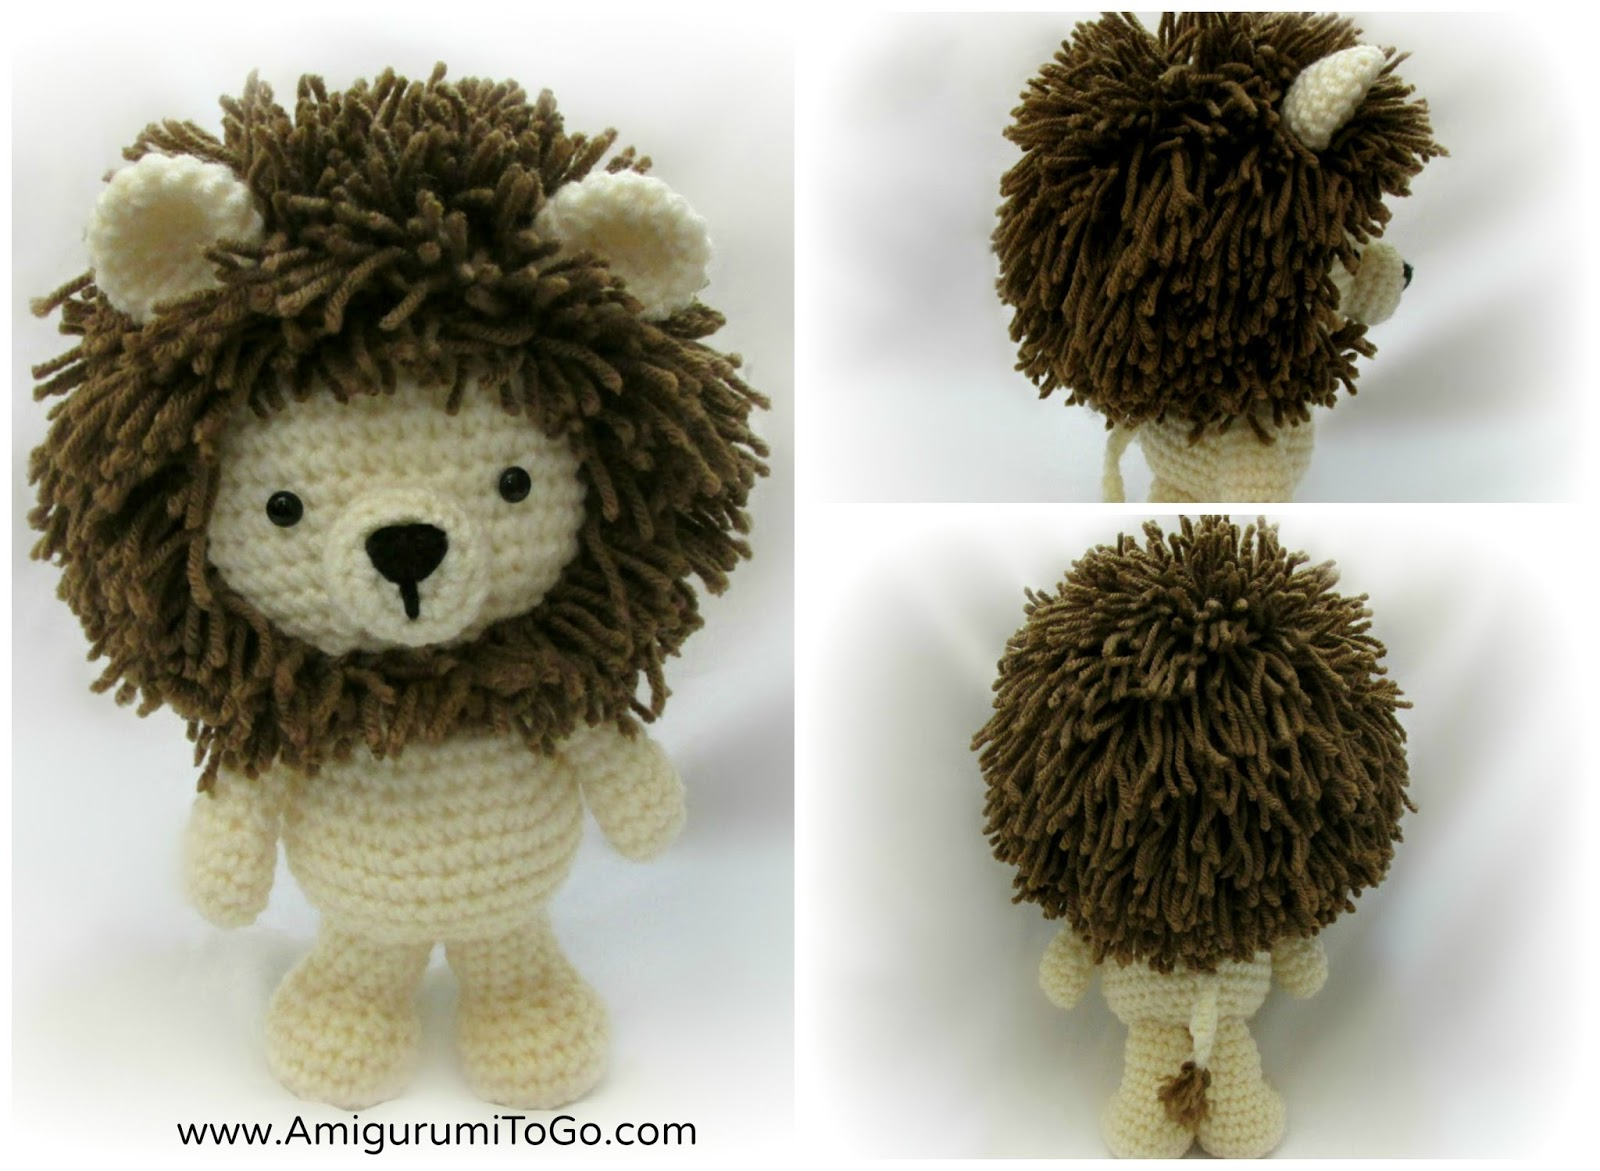 Little Amigurumi Lion : Little Bigfoot Lion 2014 ~ Amigurumi To Go